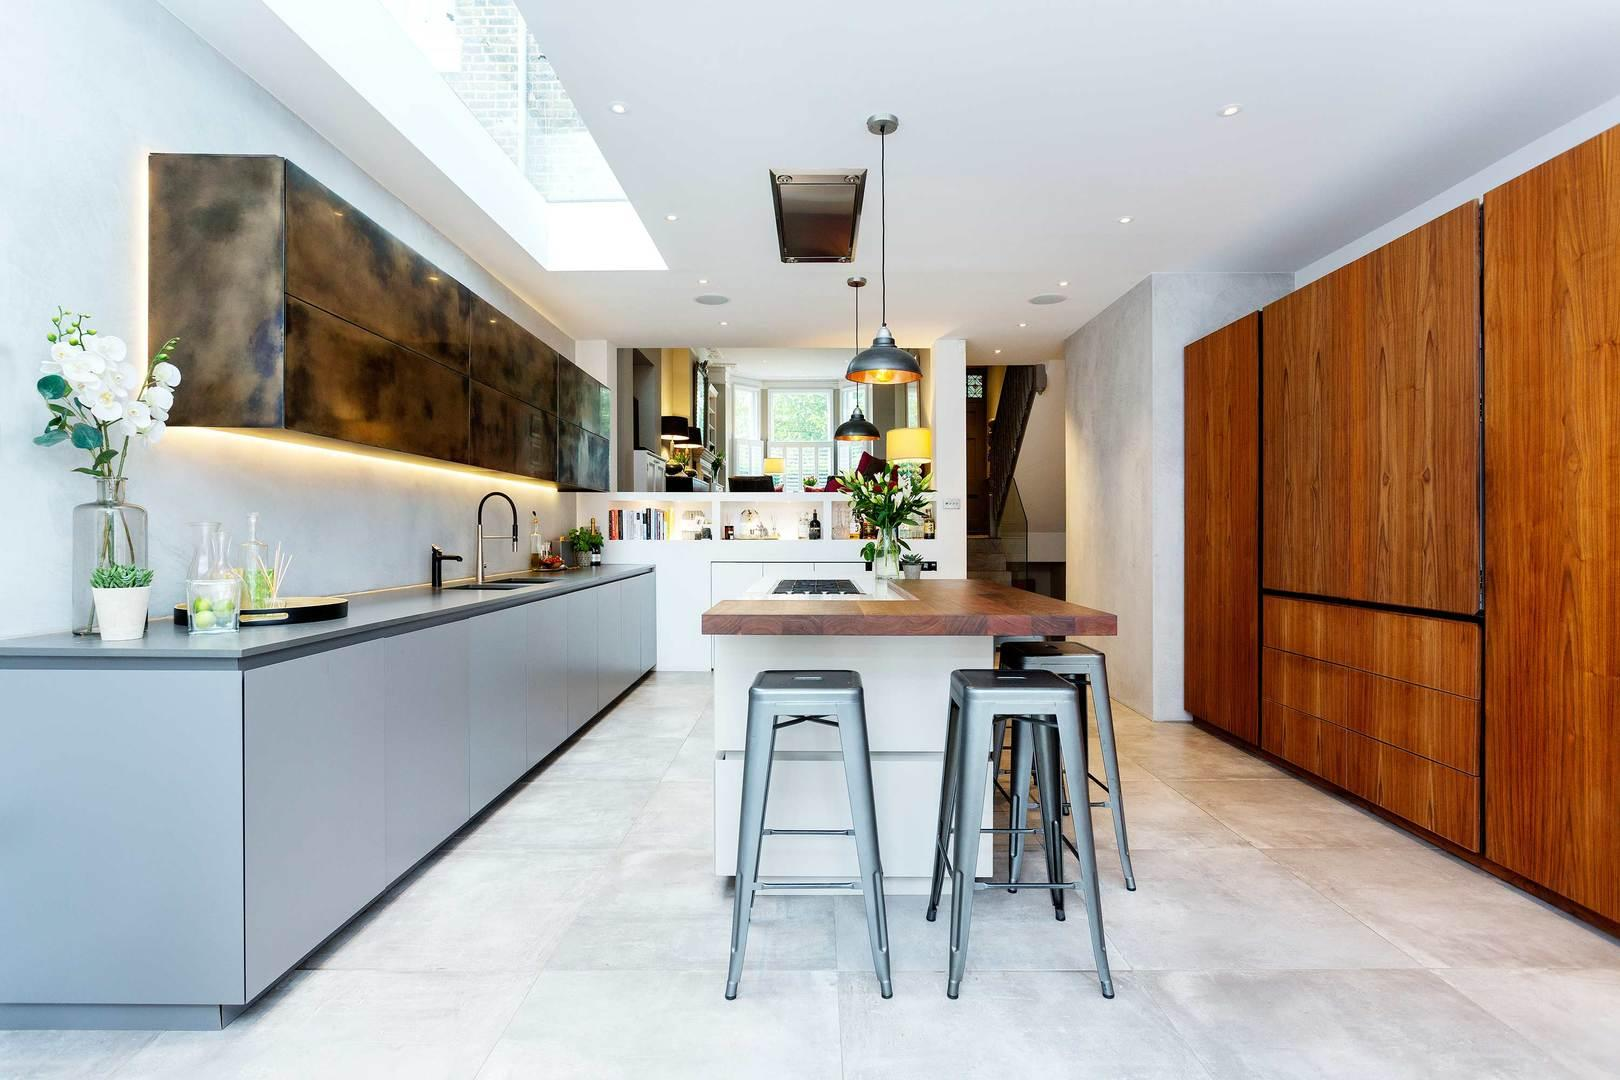 Property Image 1 - Stunning Wandsworth House with Private Garden